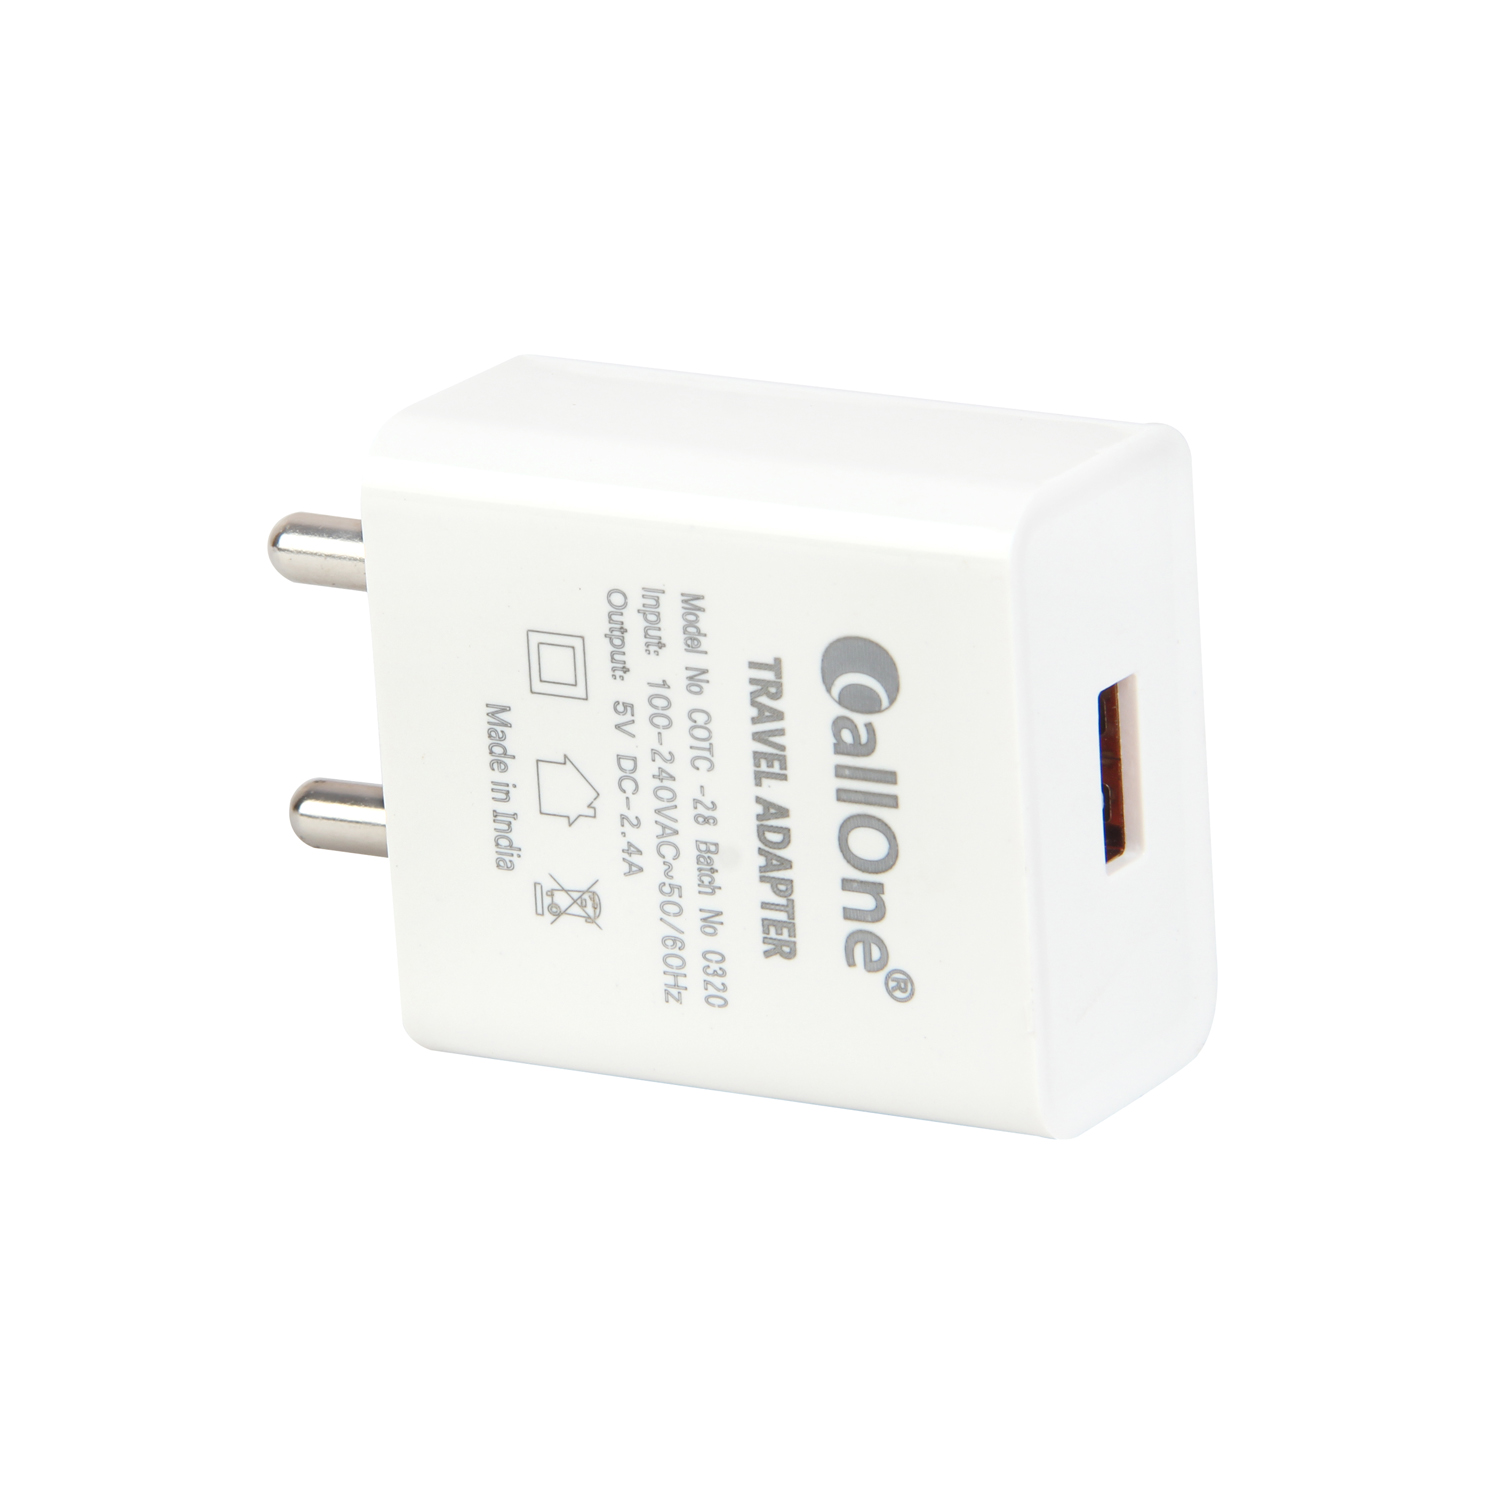 Callone Fast Travel Charger 2.4Amp with Micro Usb Cable